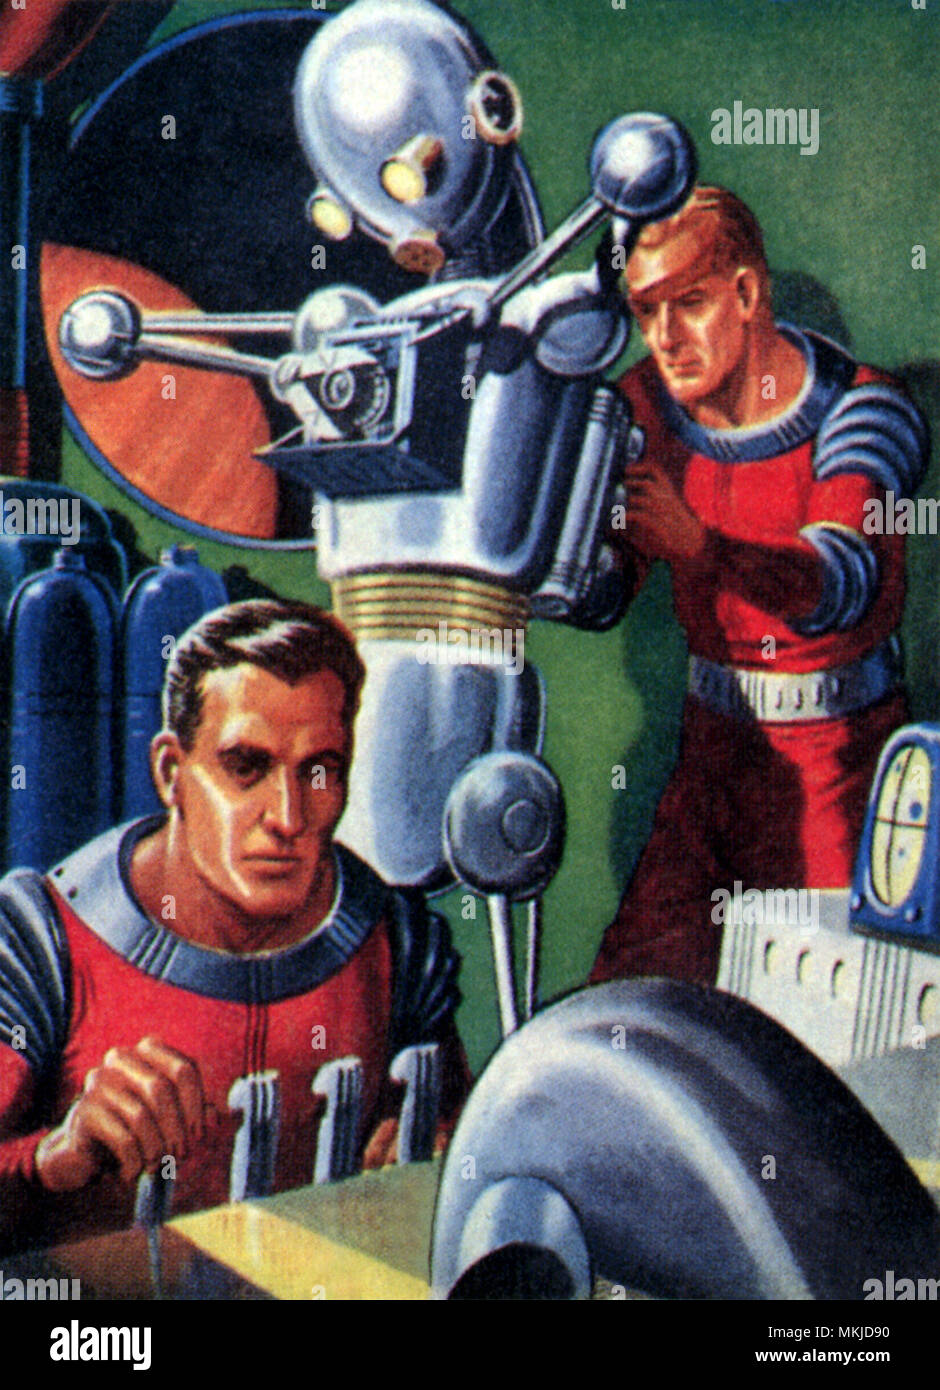 Sci Fi - Astronauts and Robot Stock Photo